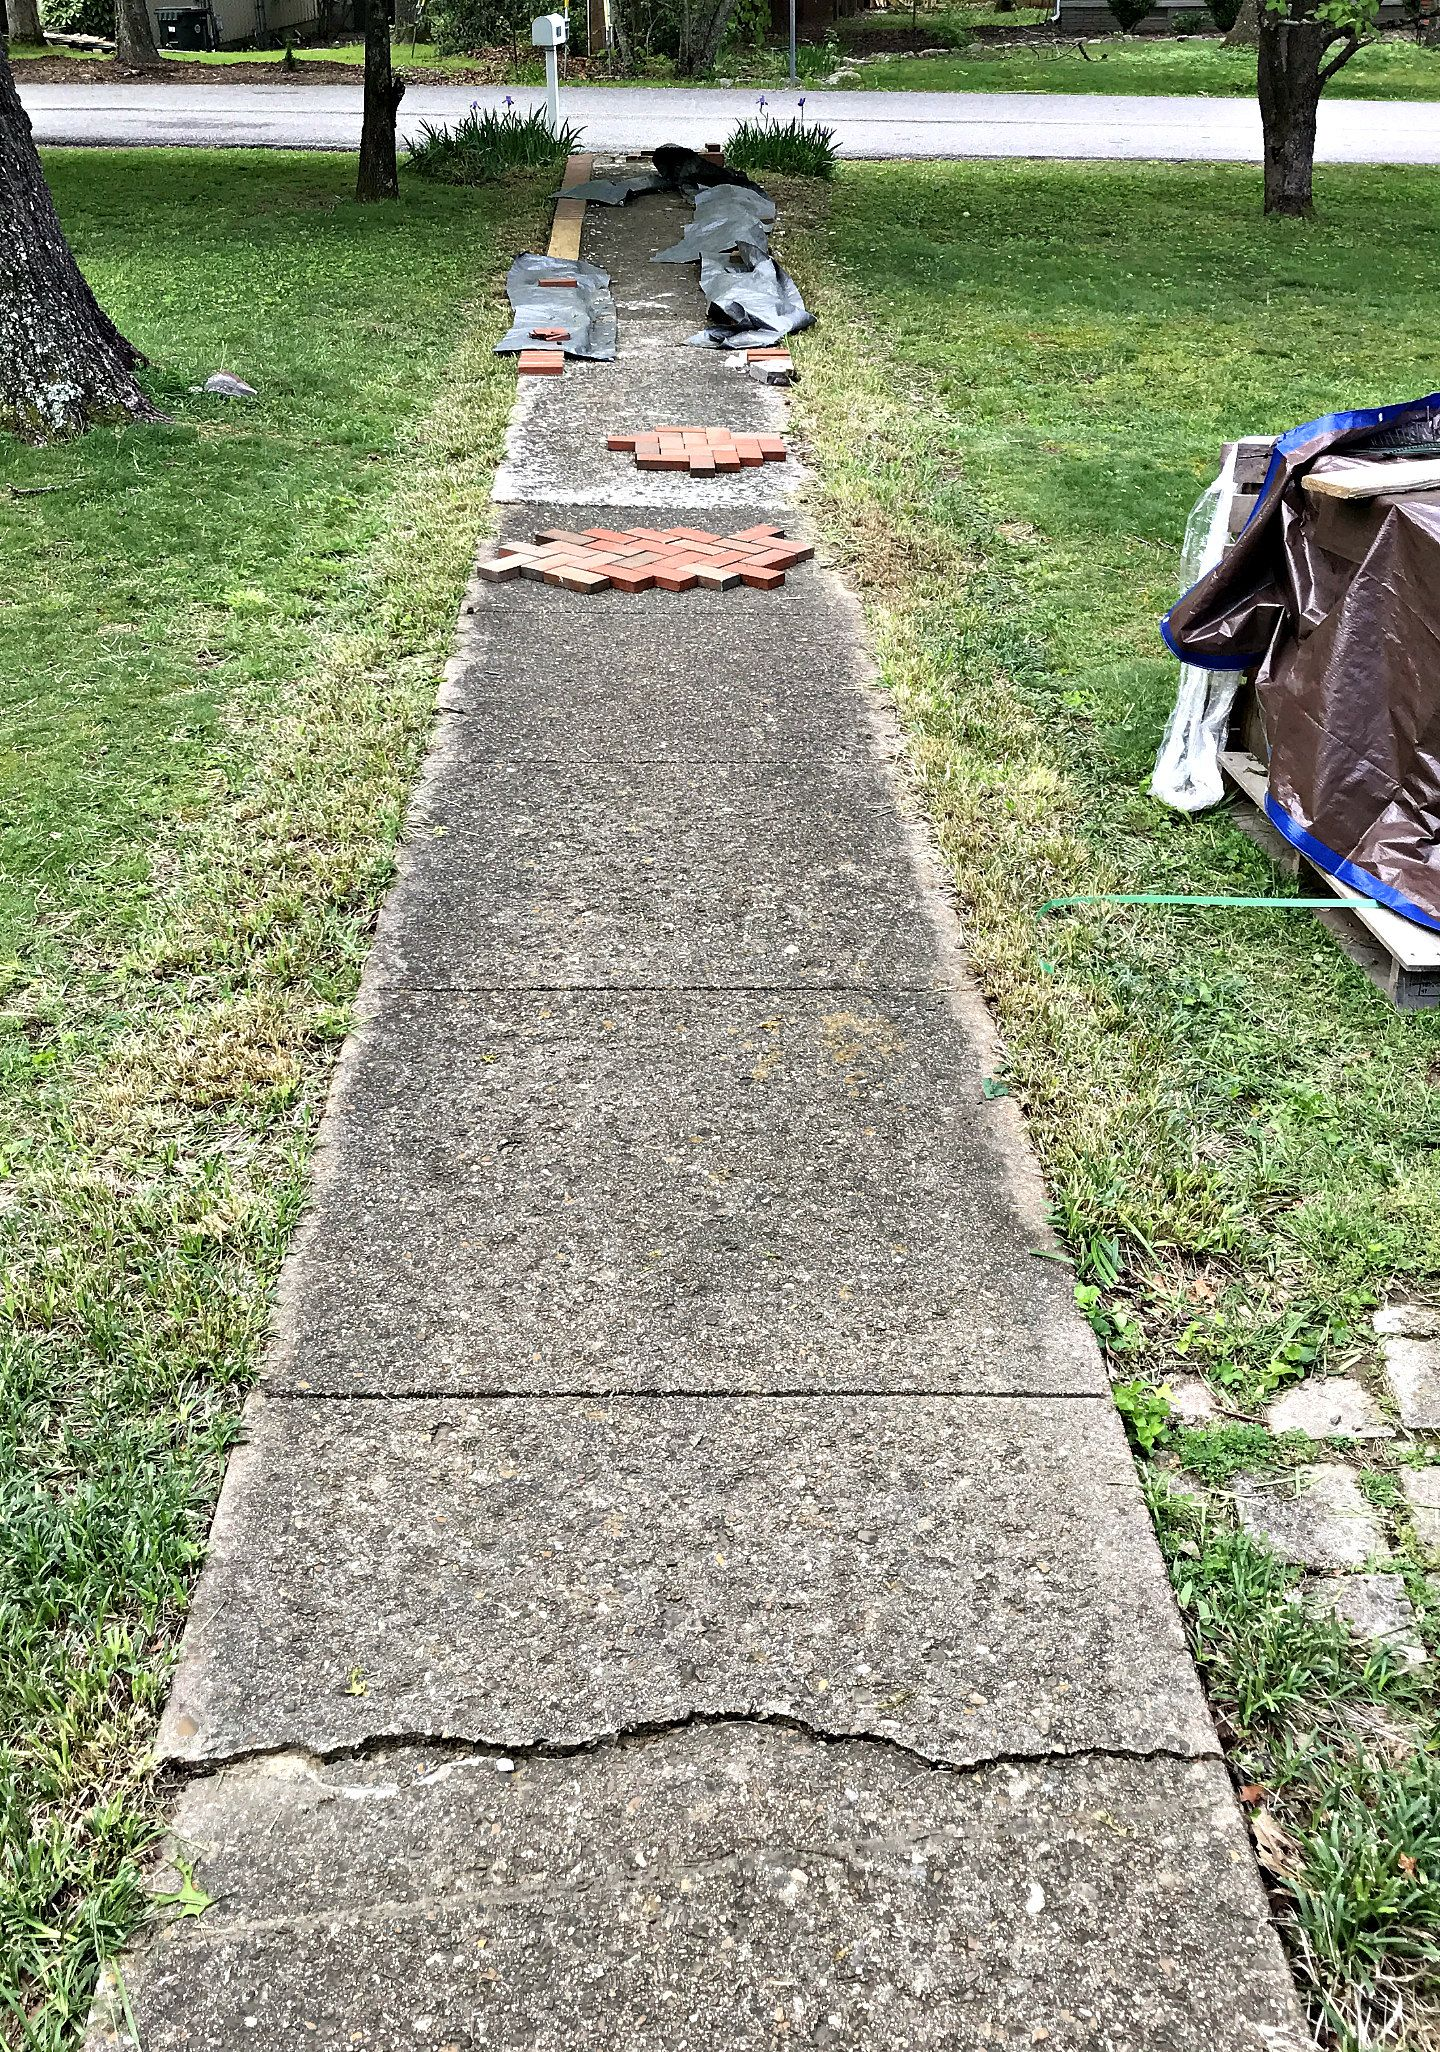 Installing Brick Pavers Over Existing Cement Sidewalk Concrete Patio Makeover Brick Paver Patio Brick Sidewalk